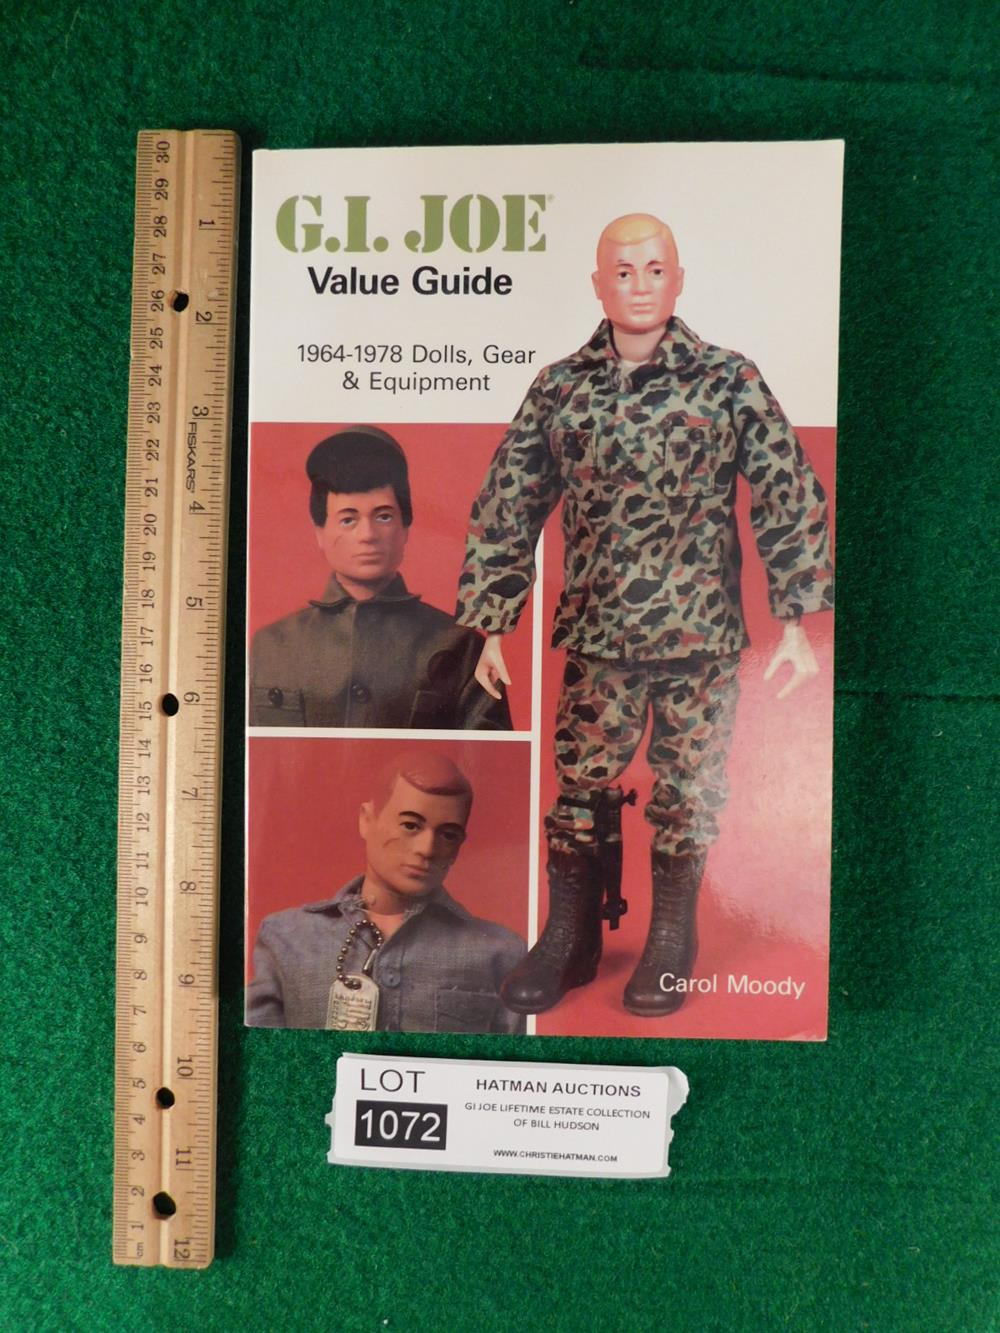 G.I. JOE VALUE GUIDE 1964-1978 DOLLS, GEAR AND EQUIPMENT